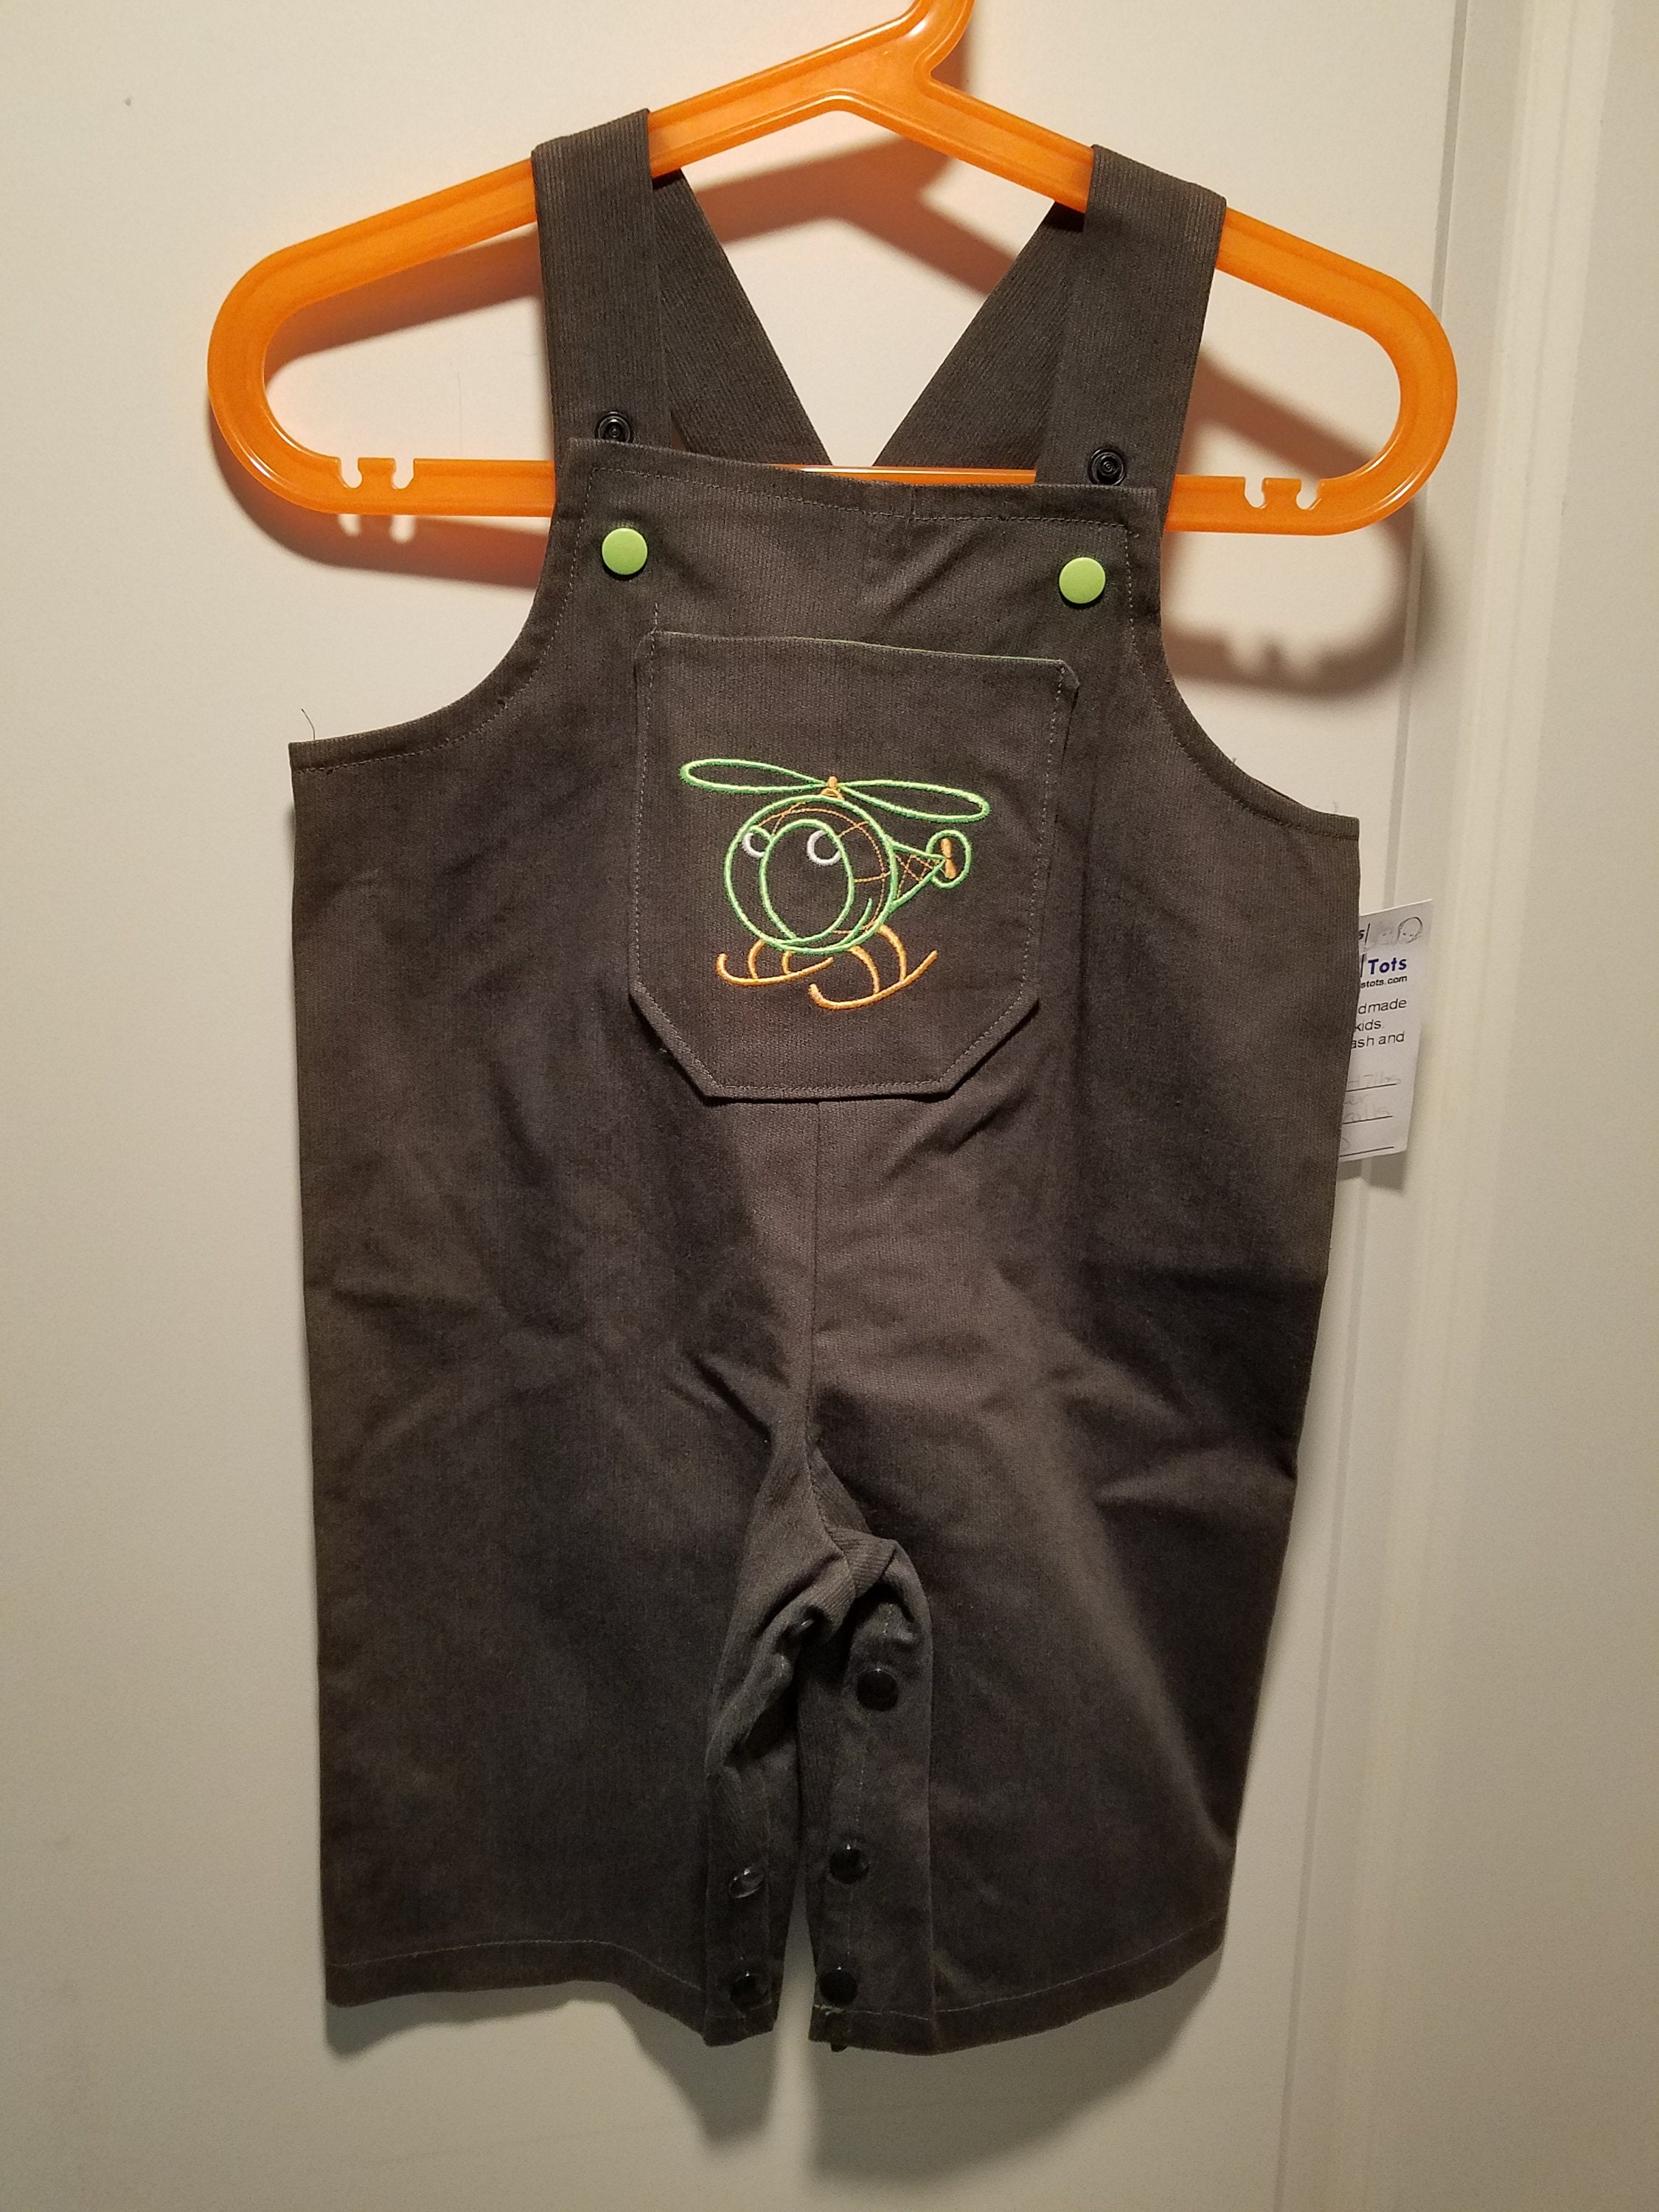 Clearance green twill overalls 6-9 months with helicopter